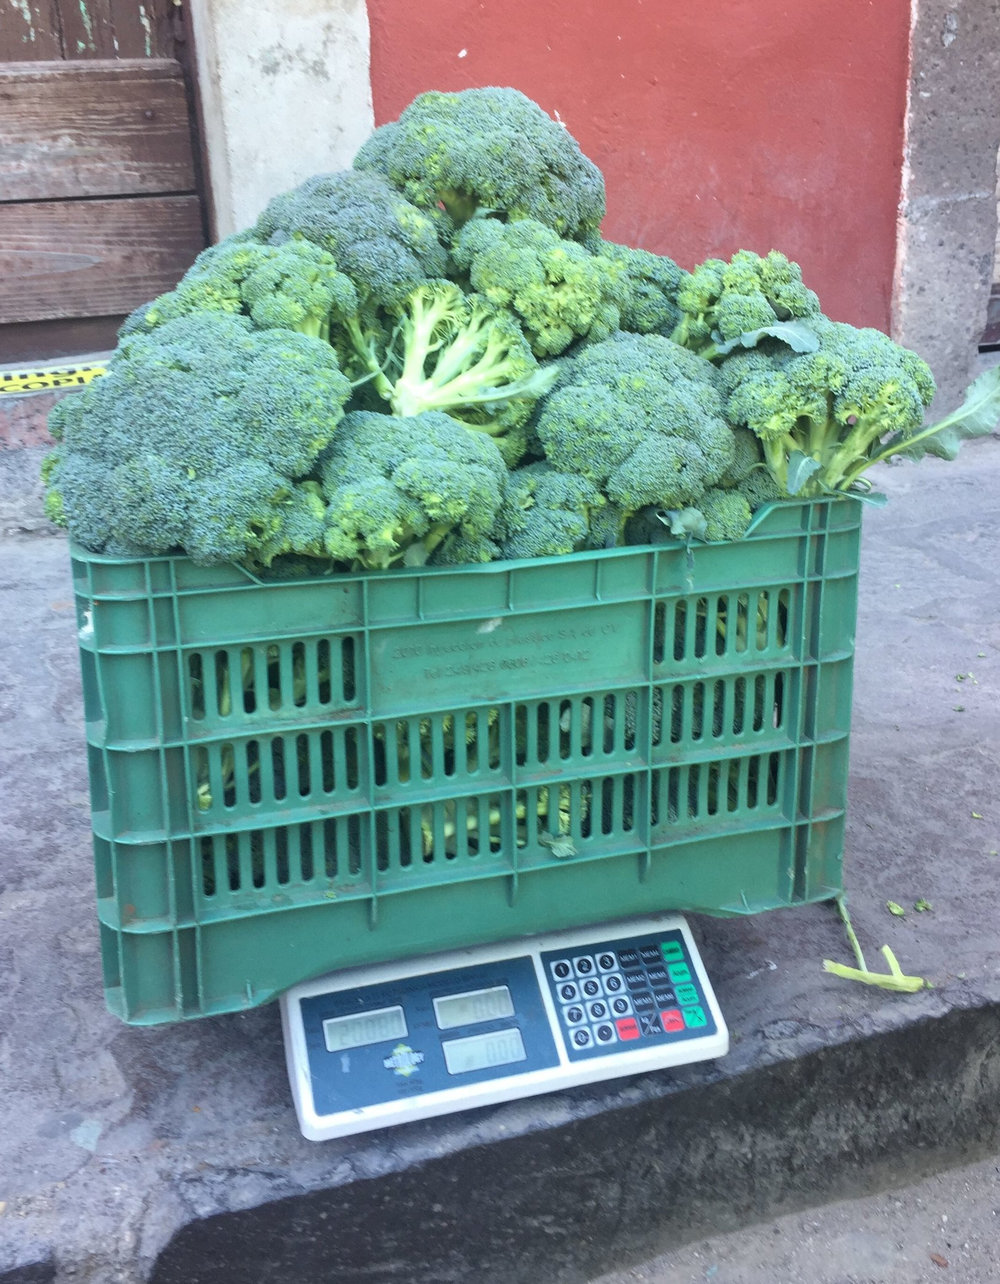 This is what 2 kilos of broccoli looks like.